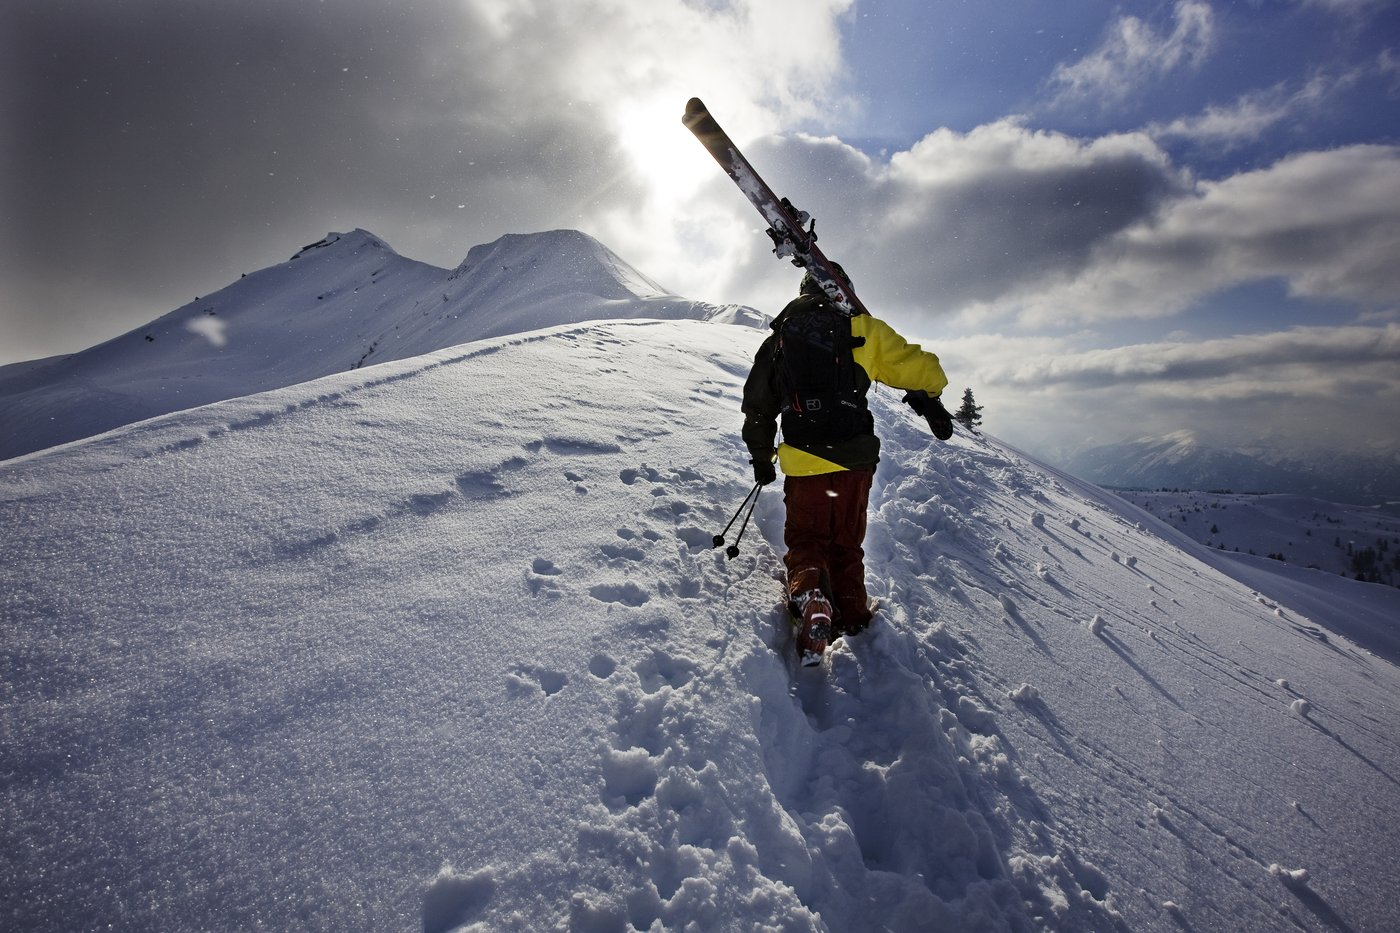 Sci alpinismo in Alpbach